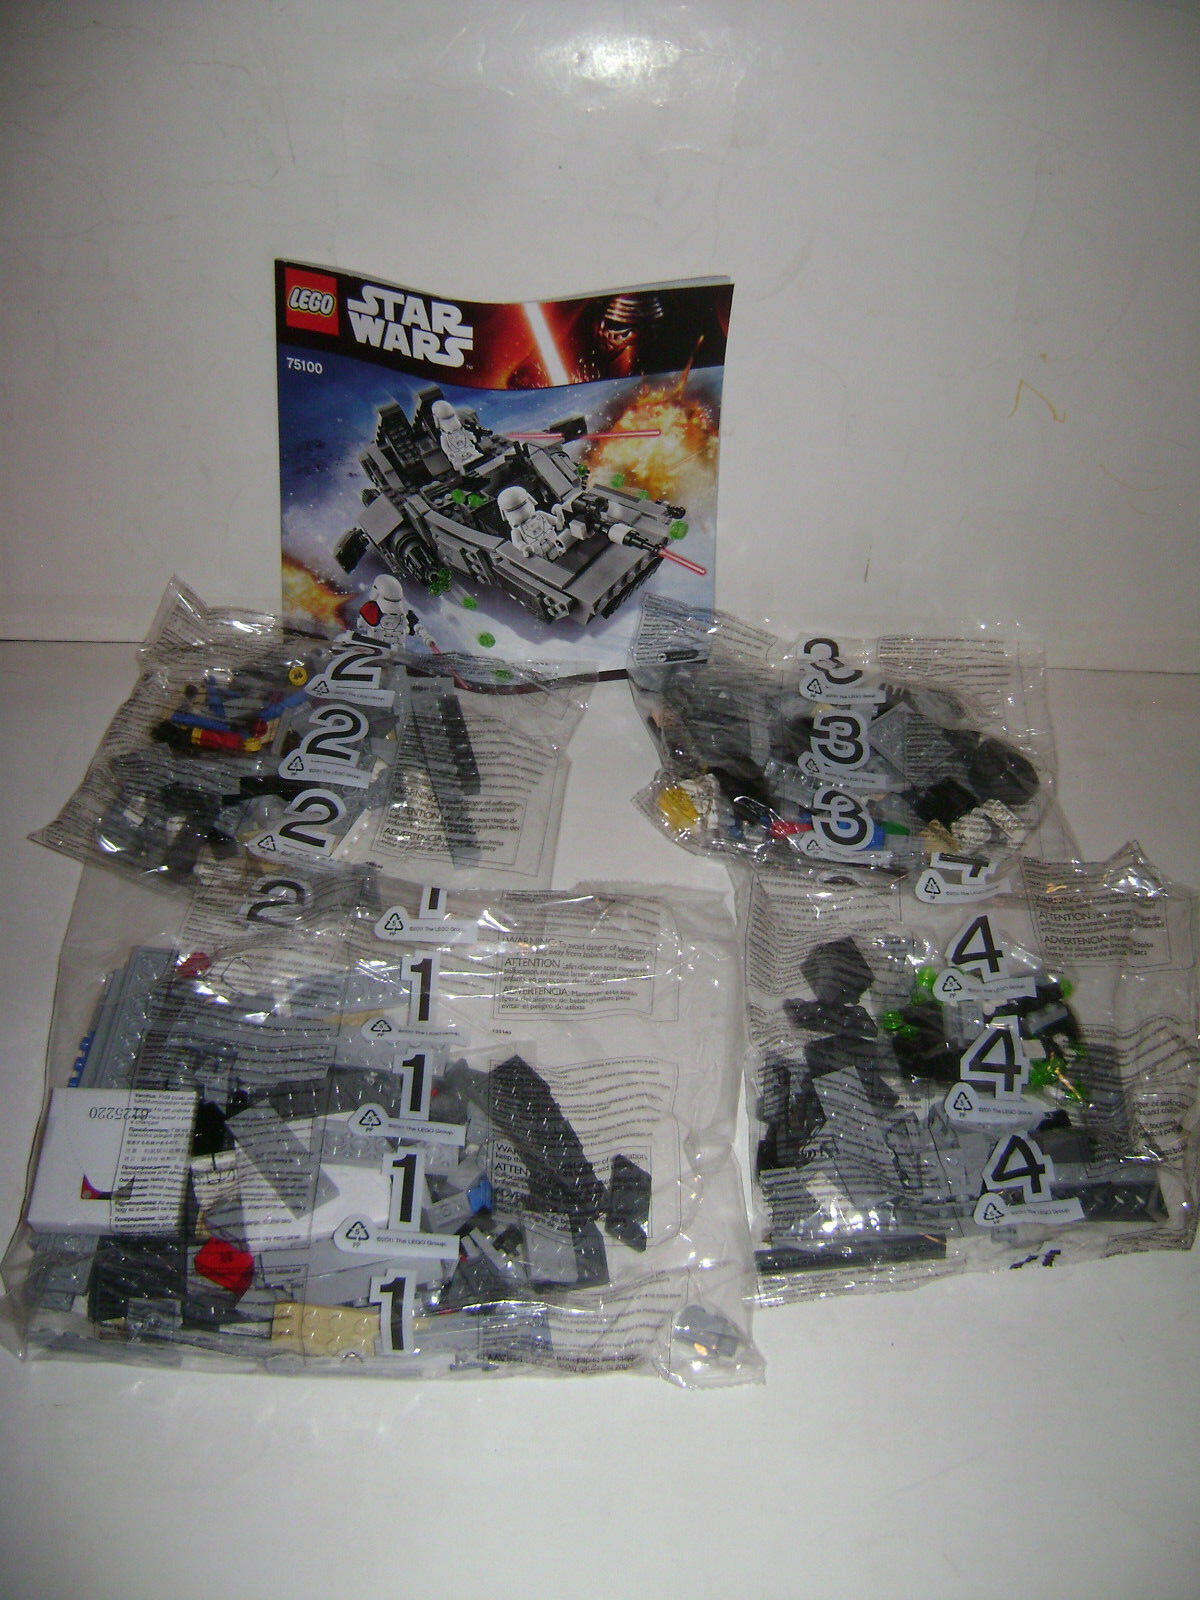 LEGO 75100 STAR WARS First Order Snowspeeder Building Set 444 Pc All Bags Sealed